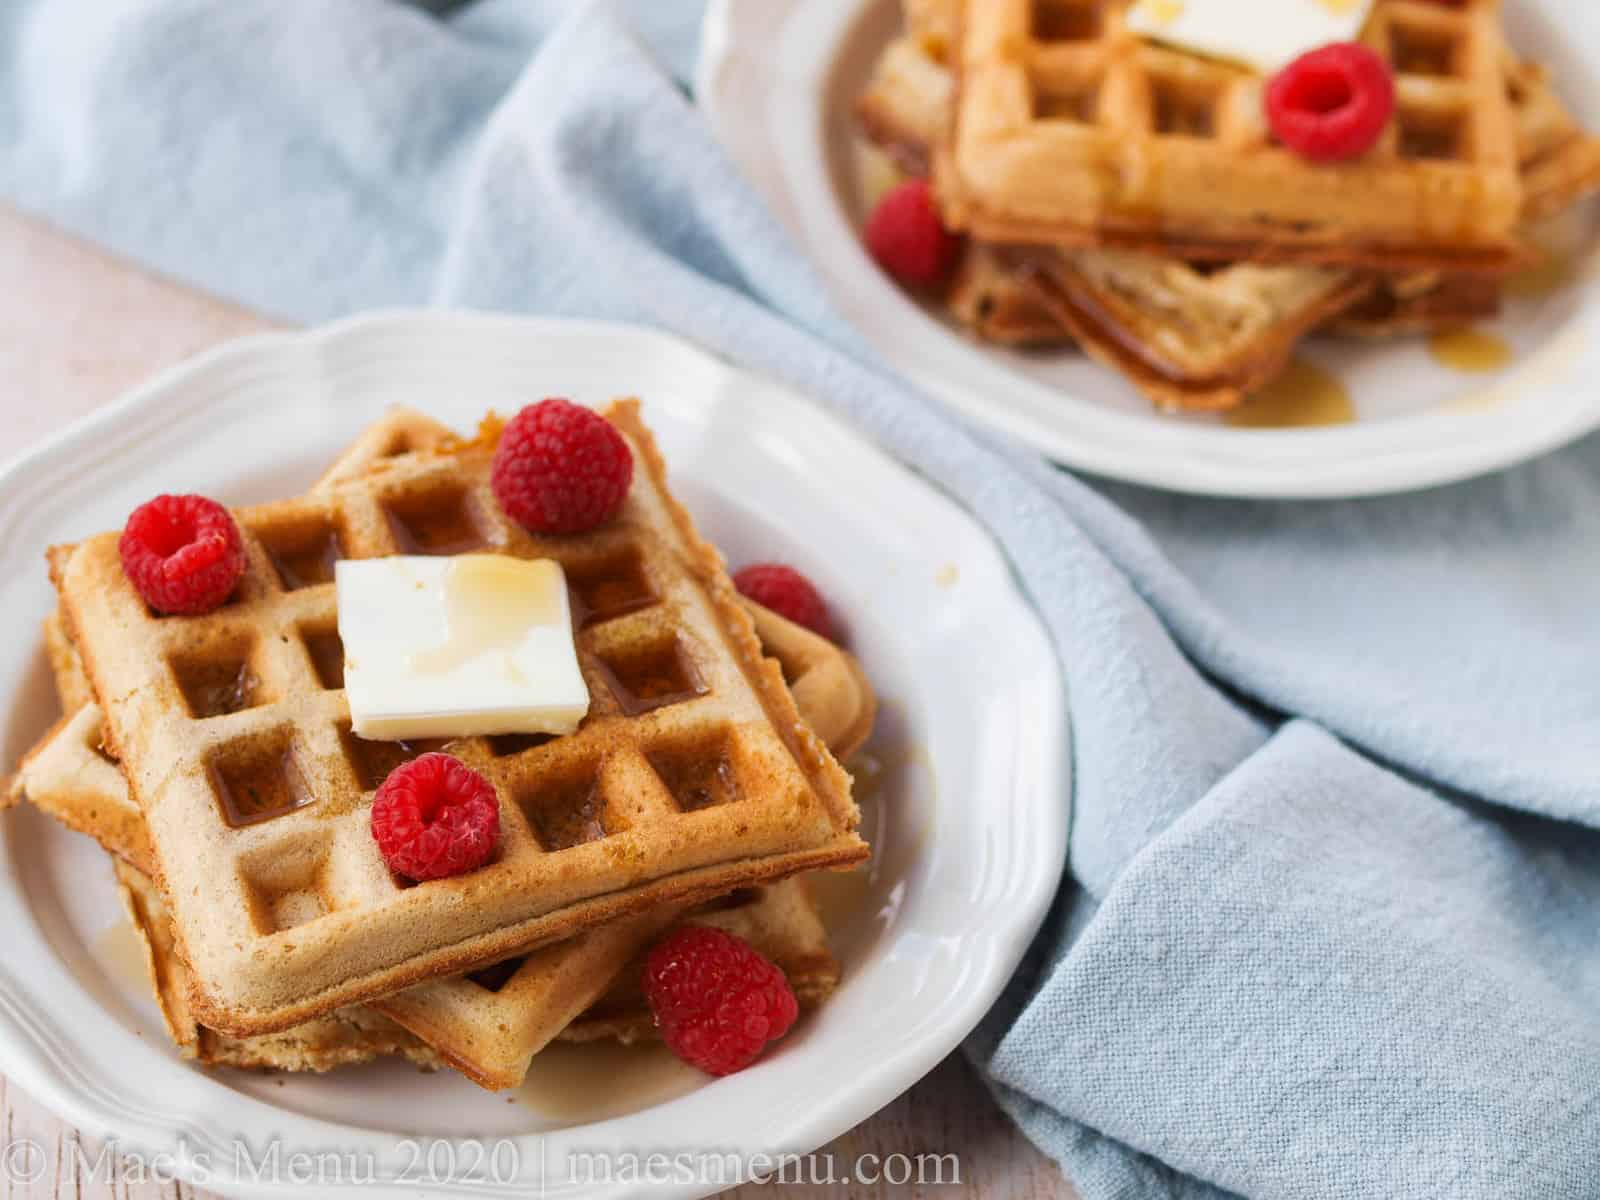 Two small plates of waffles with raspberries, butter, and syrup.